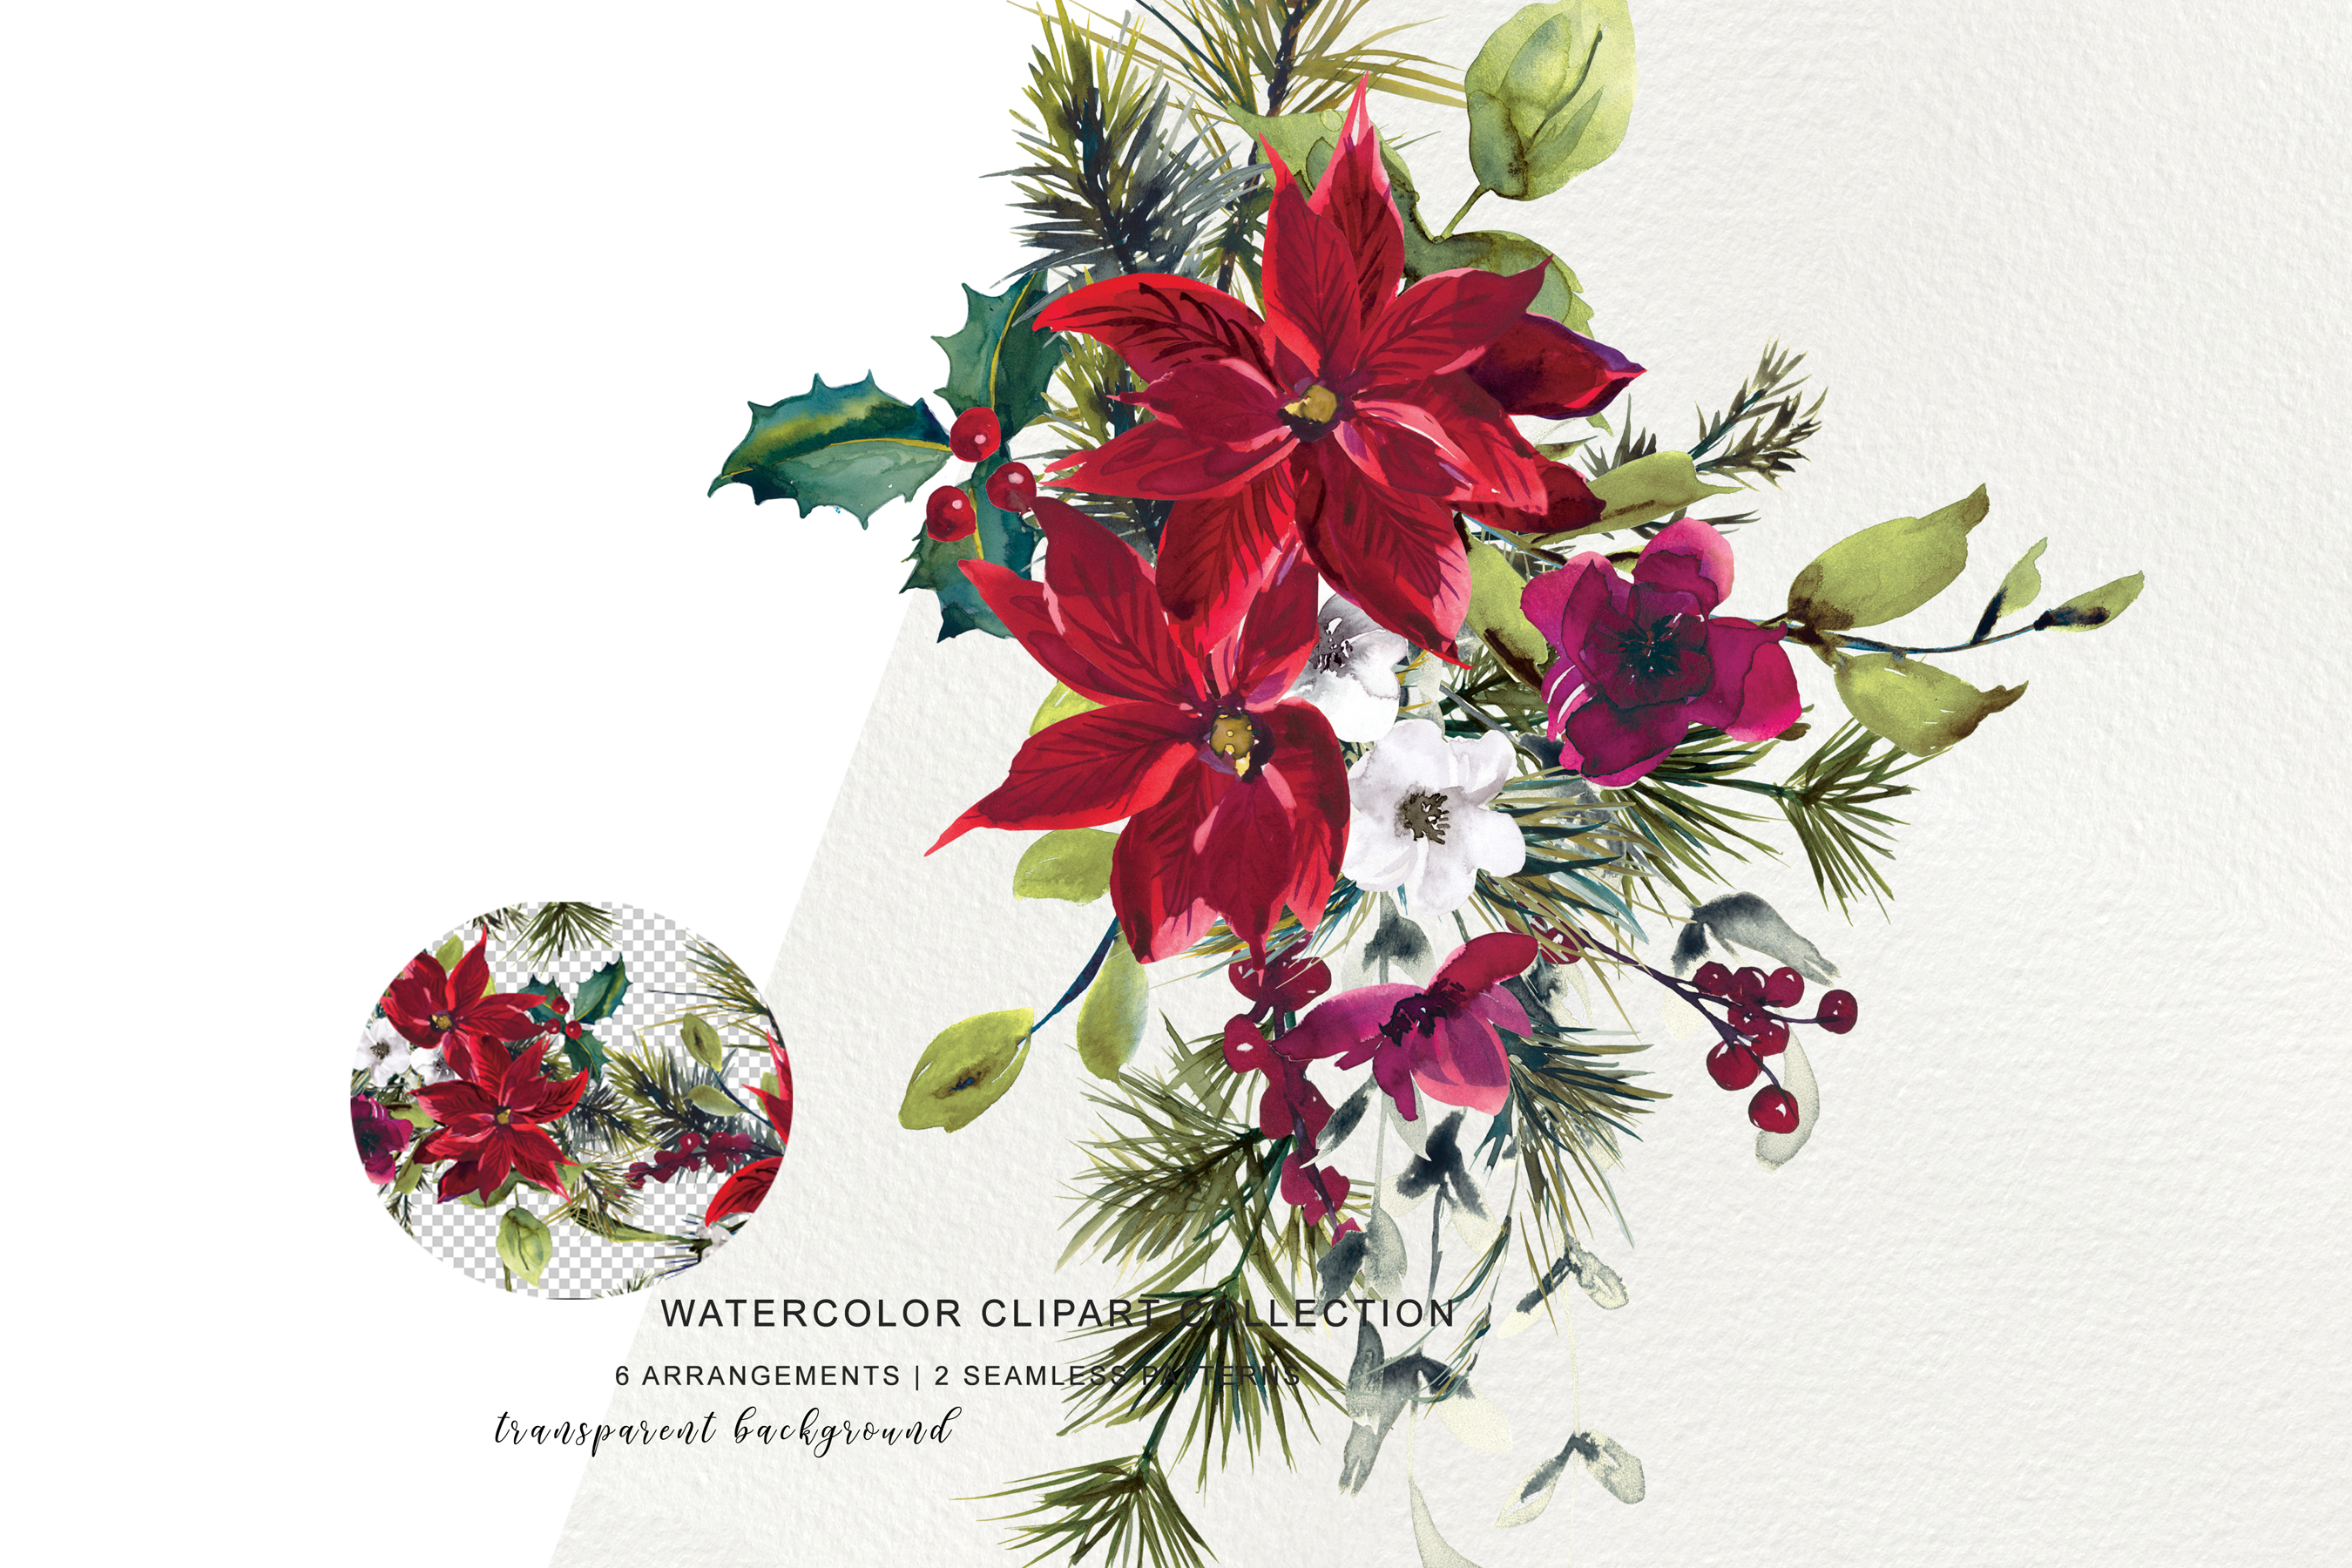 Watercolor Poinsettia Christmas Clipart example image 5